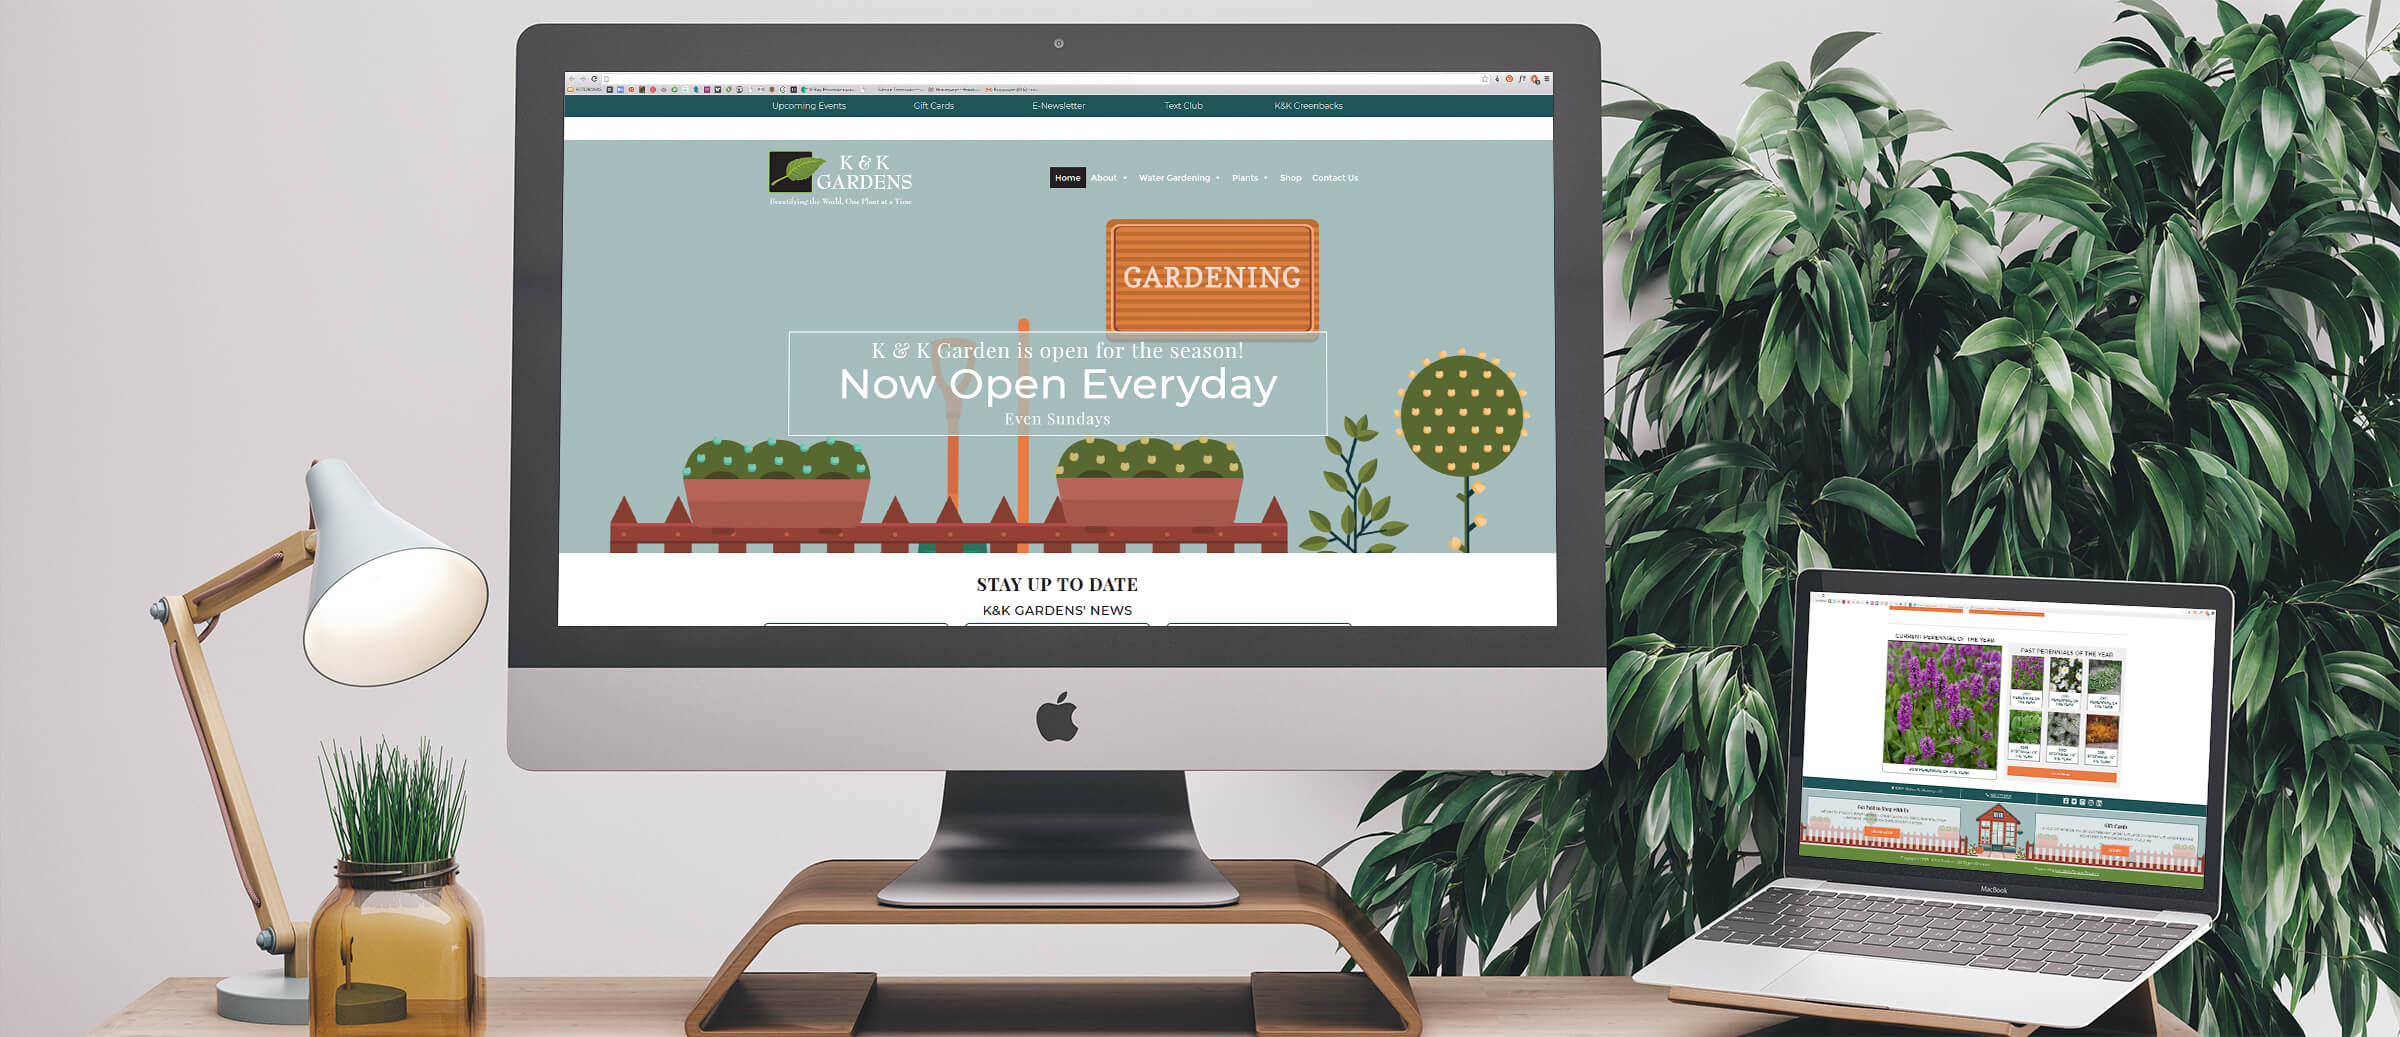 K&K Gardens' website on computer and laptop